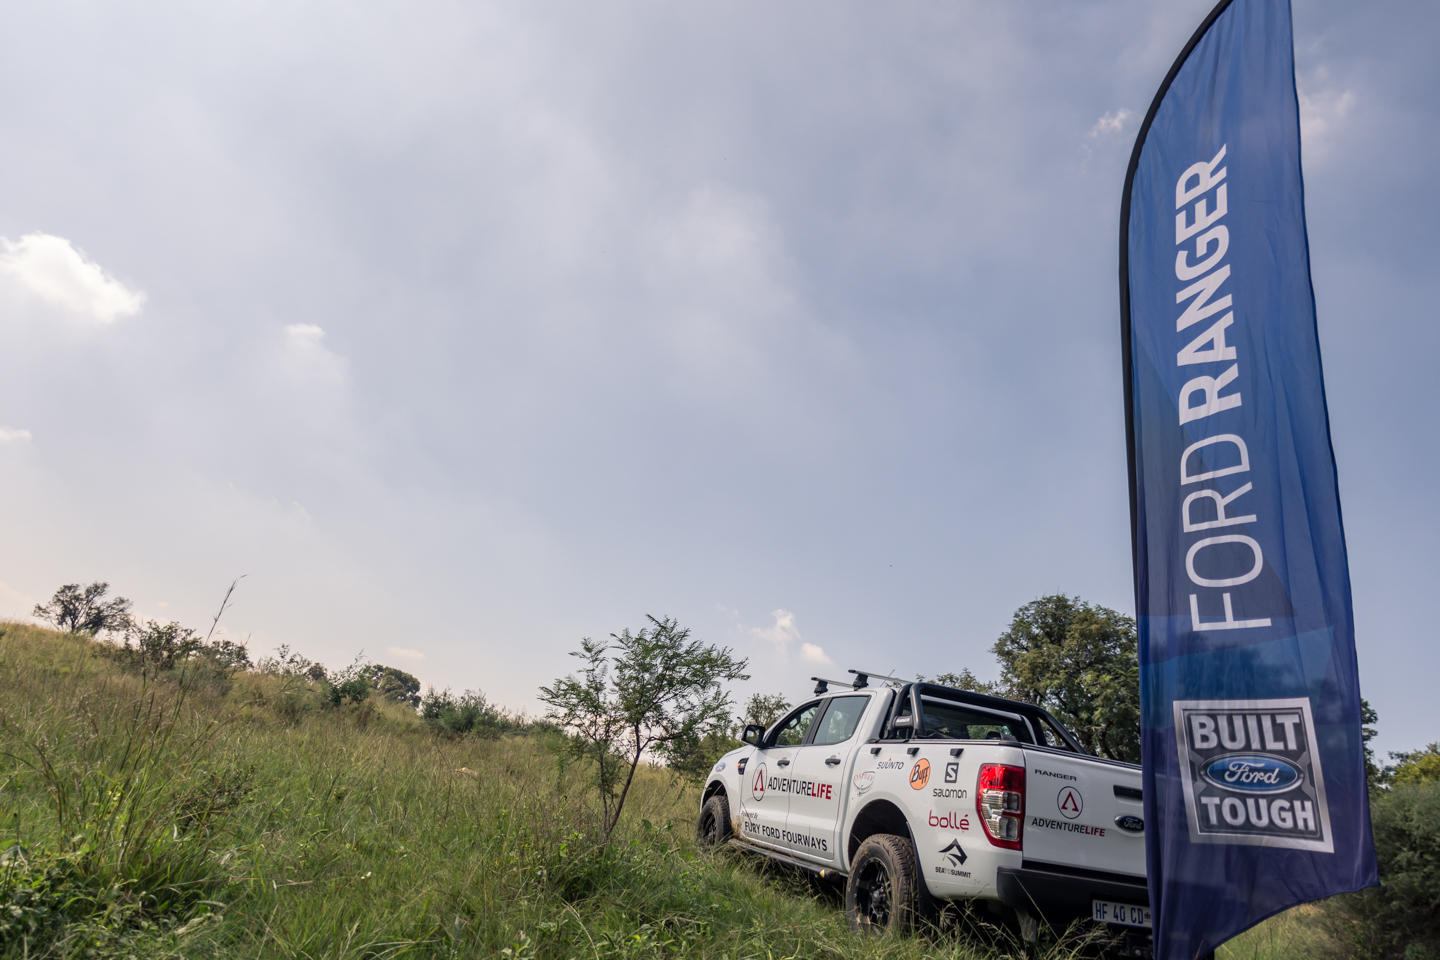 Adventure Life showcasing their Ford Ranger at water point 3